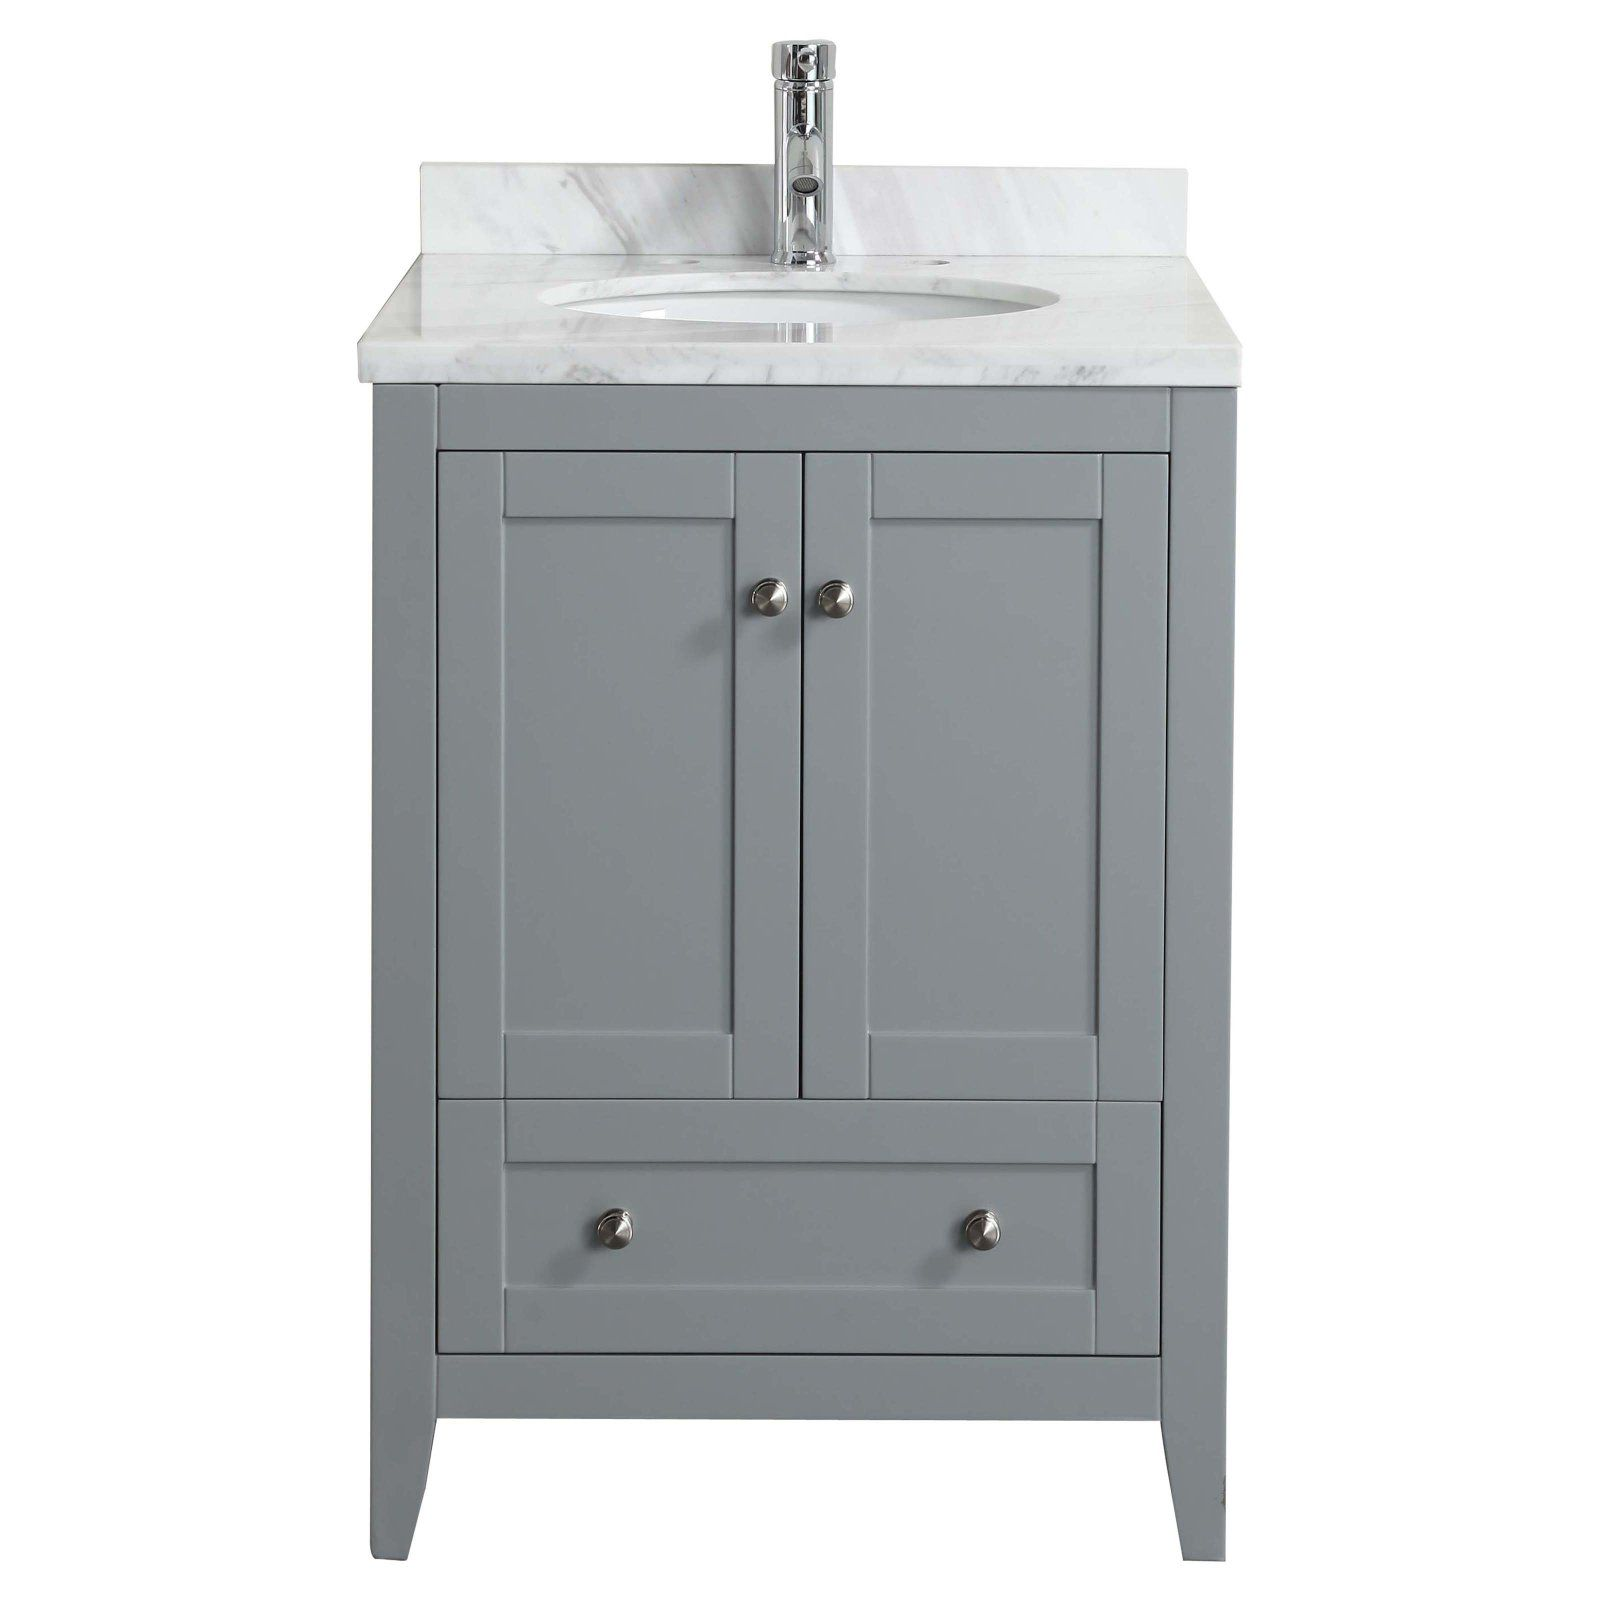 Eviva Lime 24 In Single Sink Bathroom Vanity Bathroom Sink Vanity Single Sink Bathroom Vanity Vanity